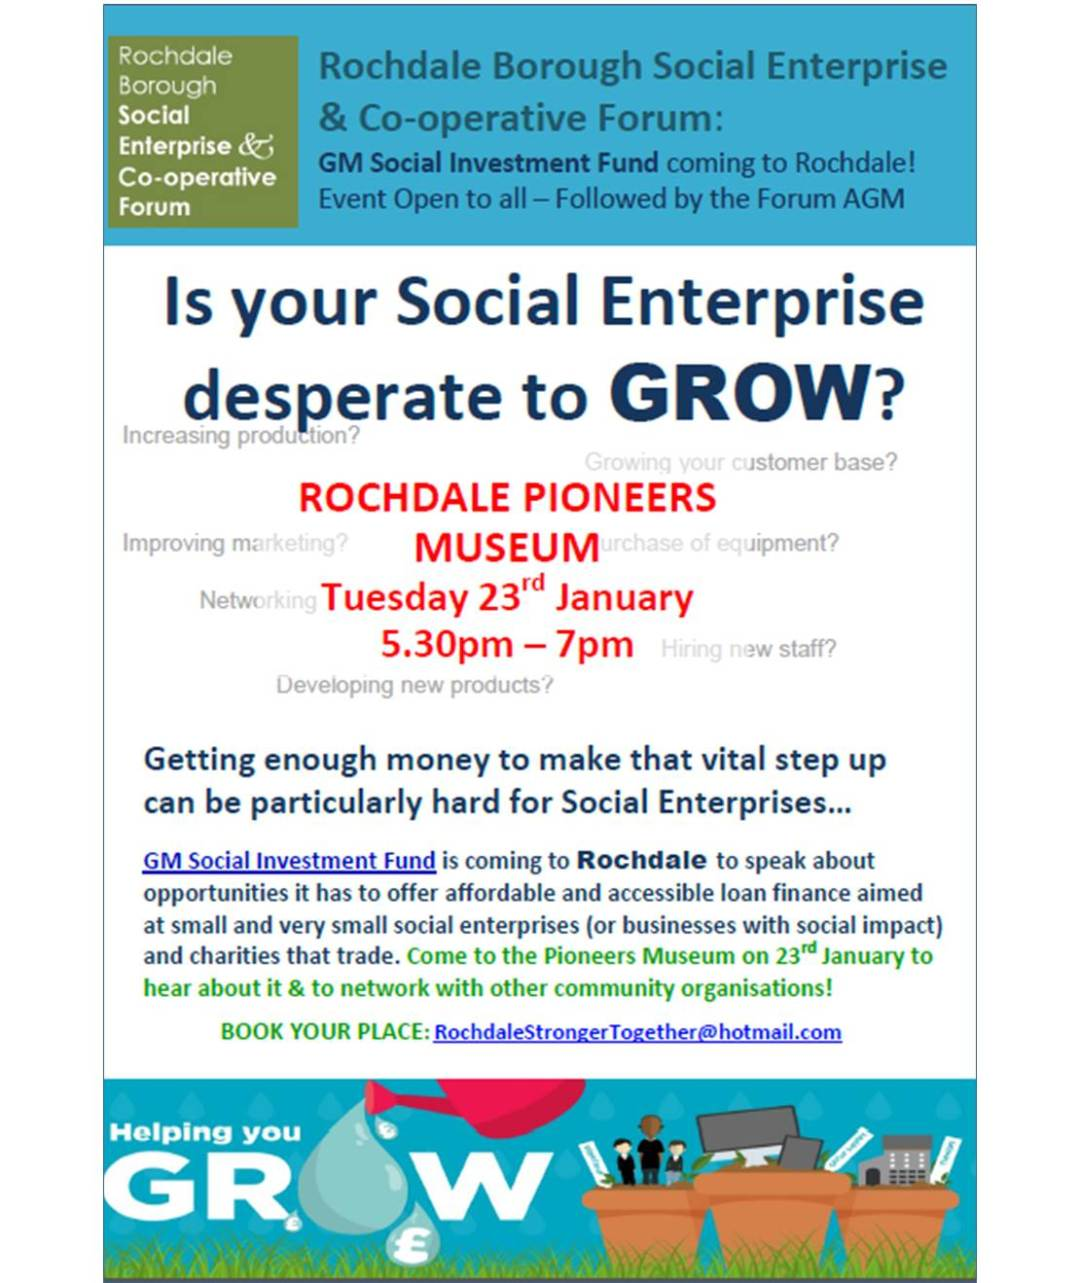 GM Social Investment Fund Event - ROCHDALE - 23 Jan 2018